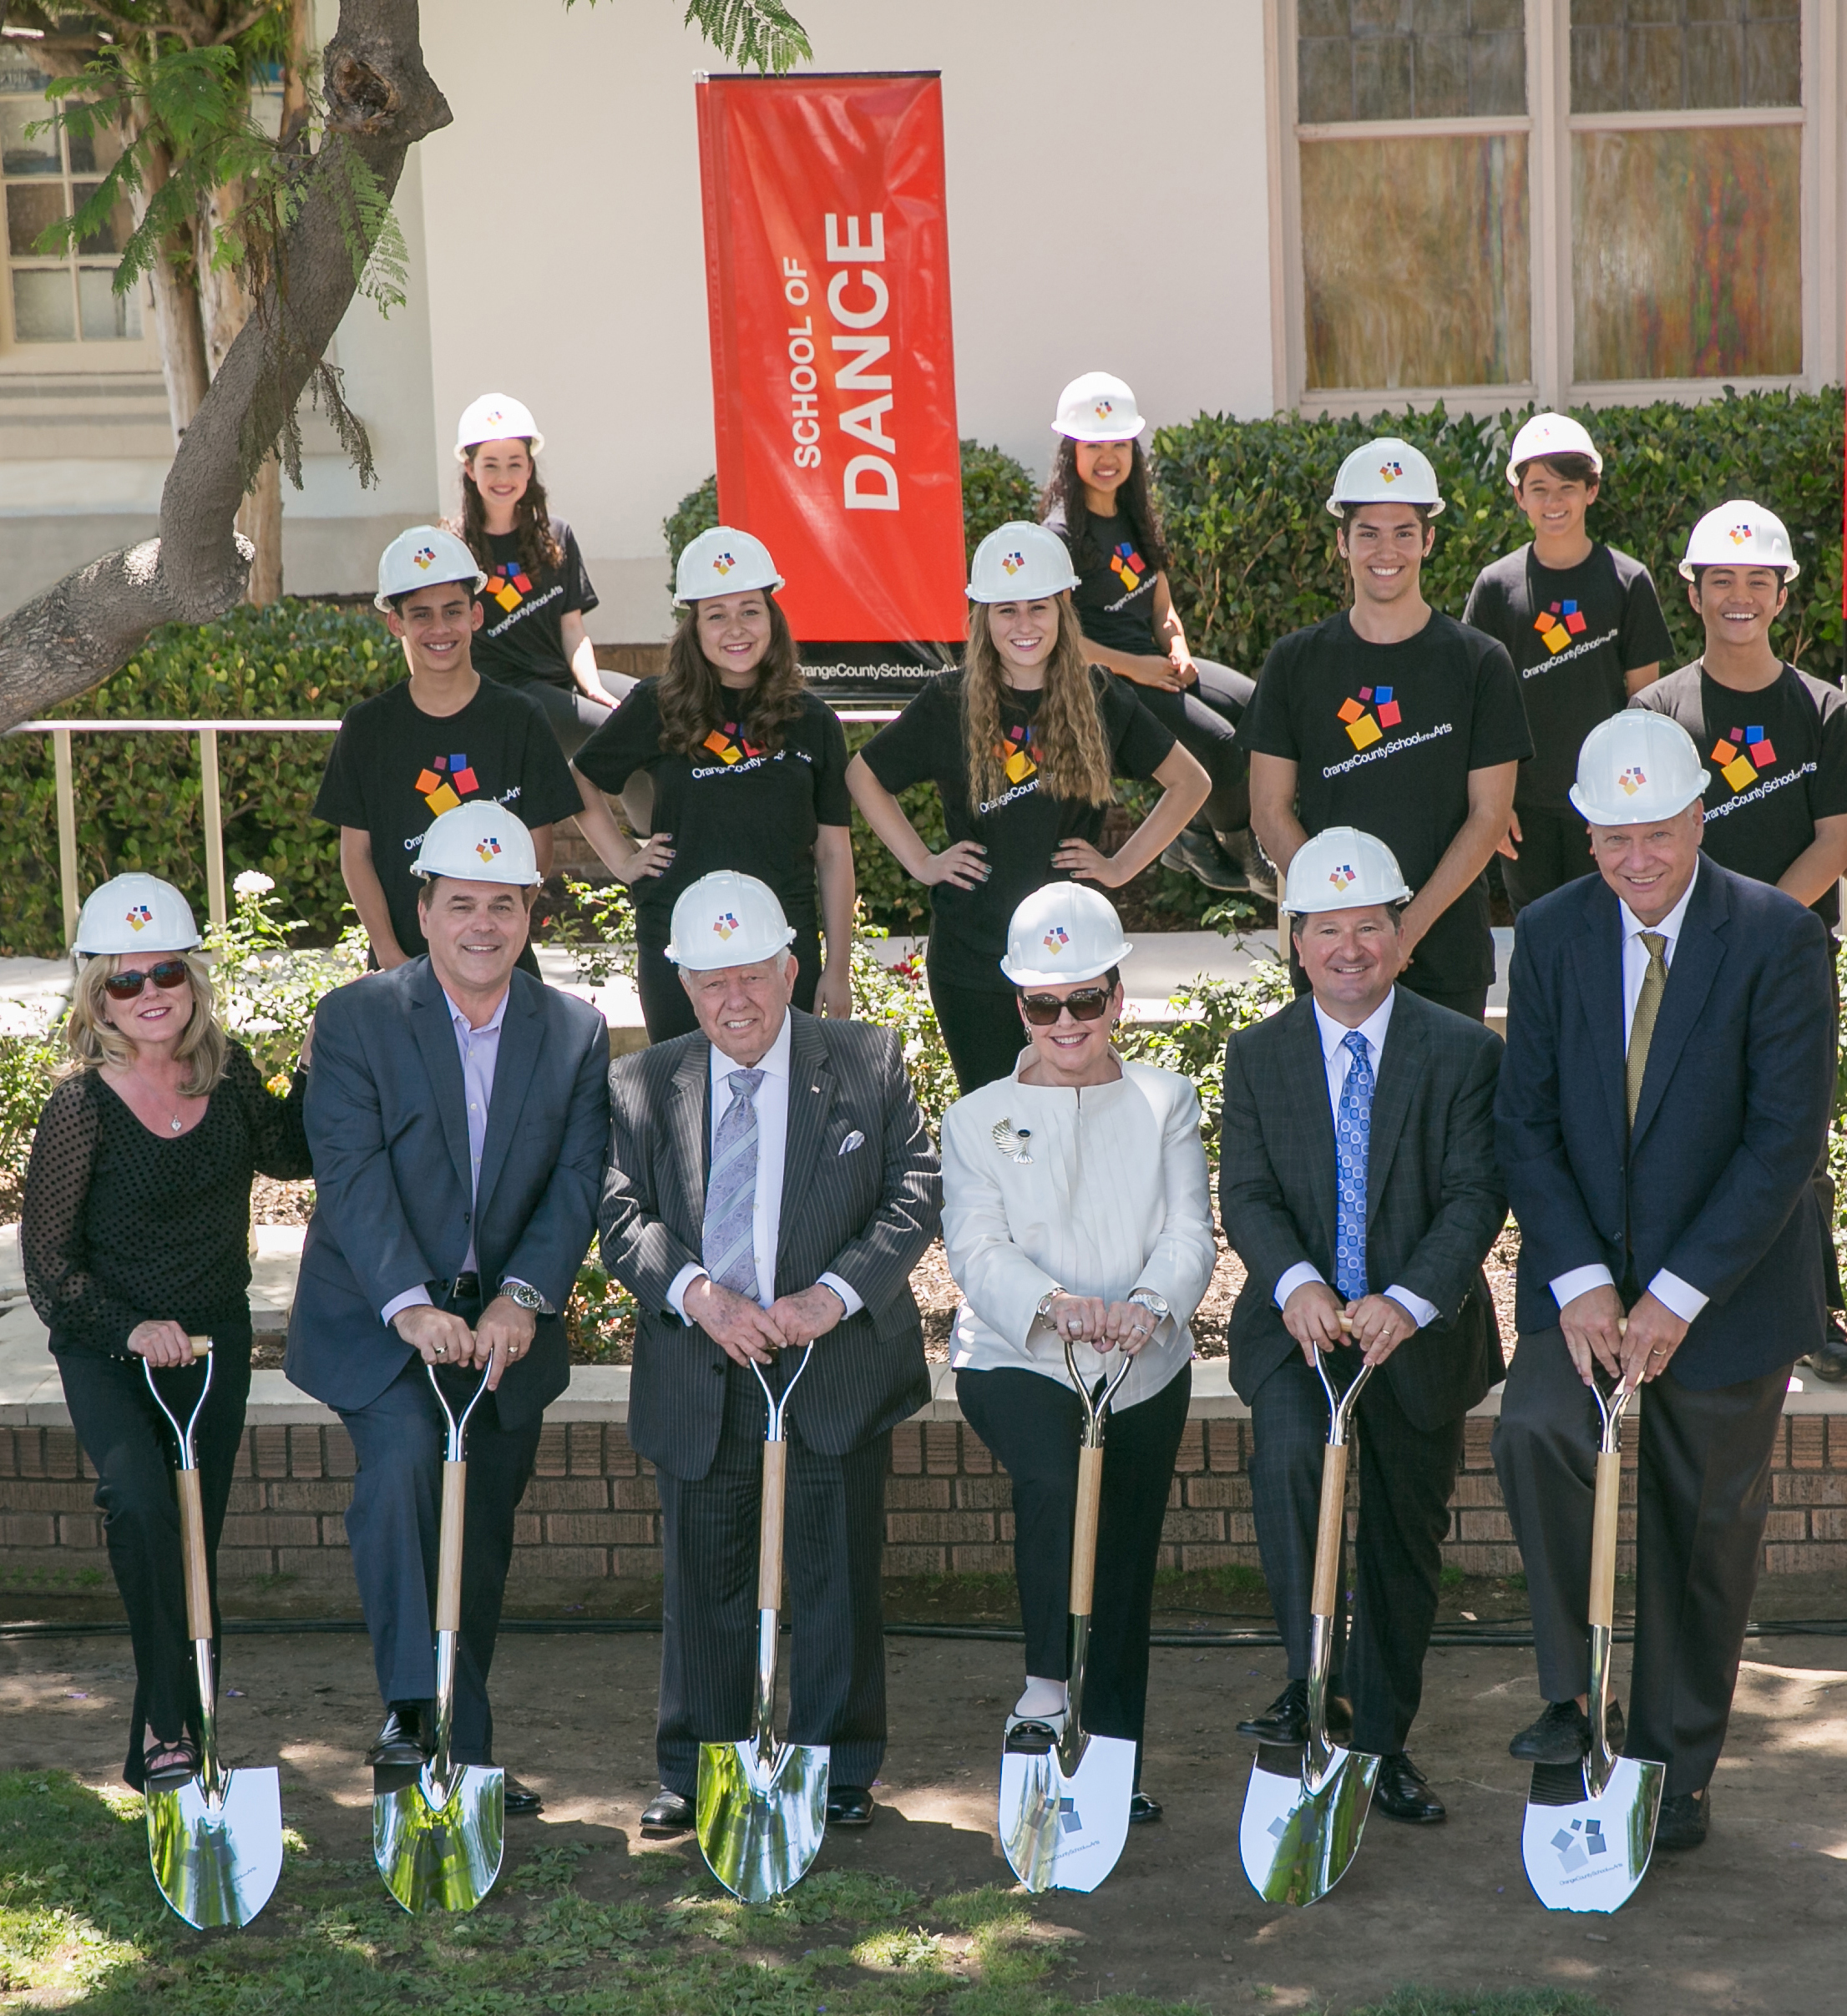 Orange County School of the Arts Breaks Ground on $20 Million Instructional Center